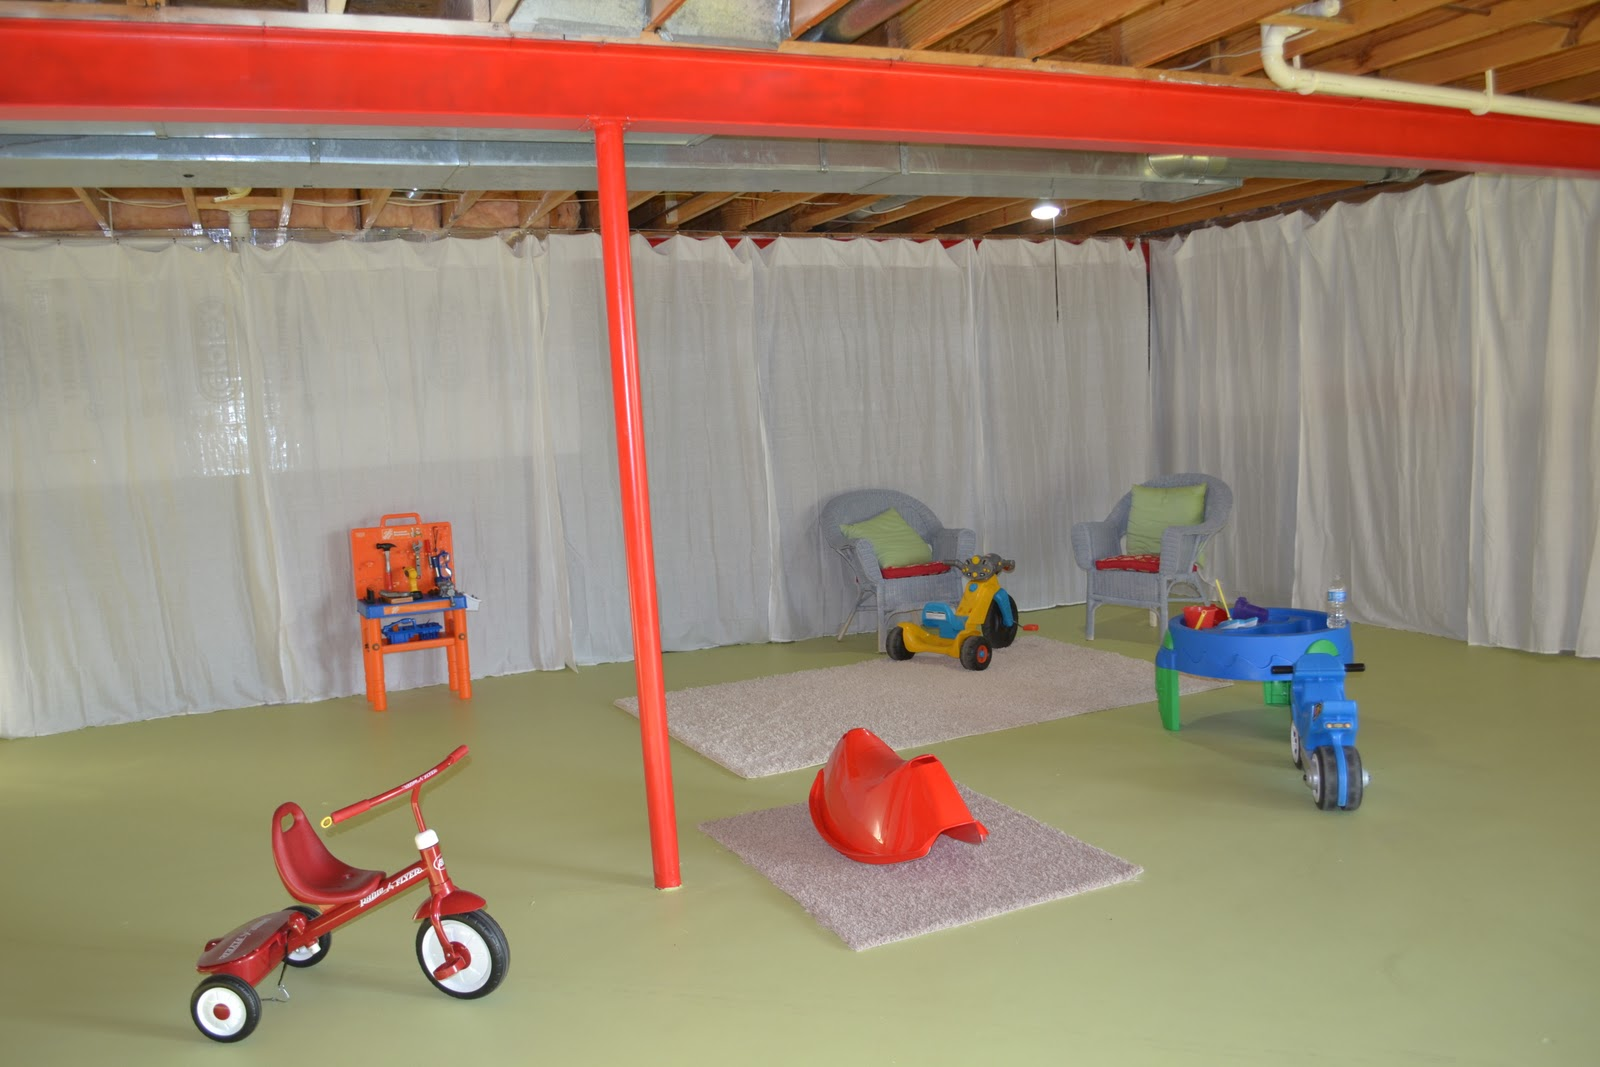 Curtain Wall Basement : Sunny carrier basement playroom update and wire curtain